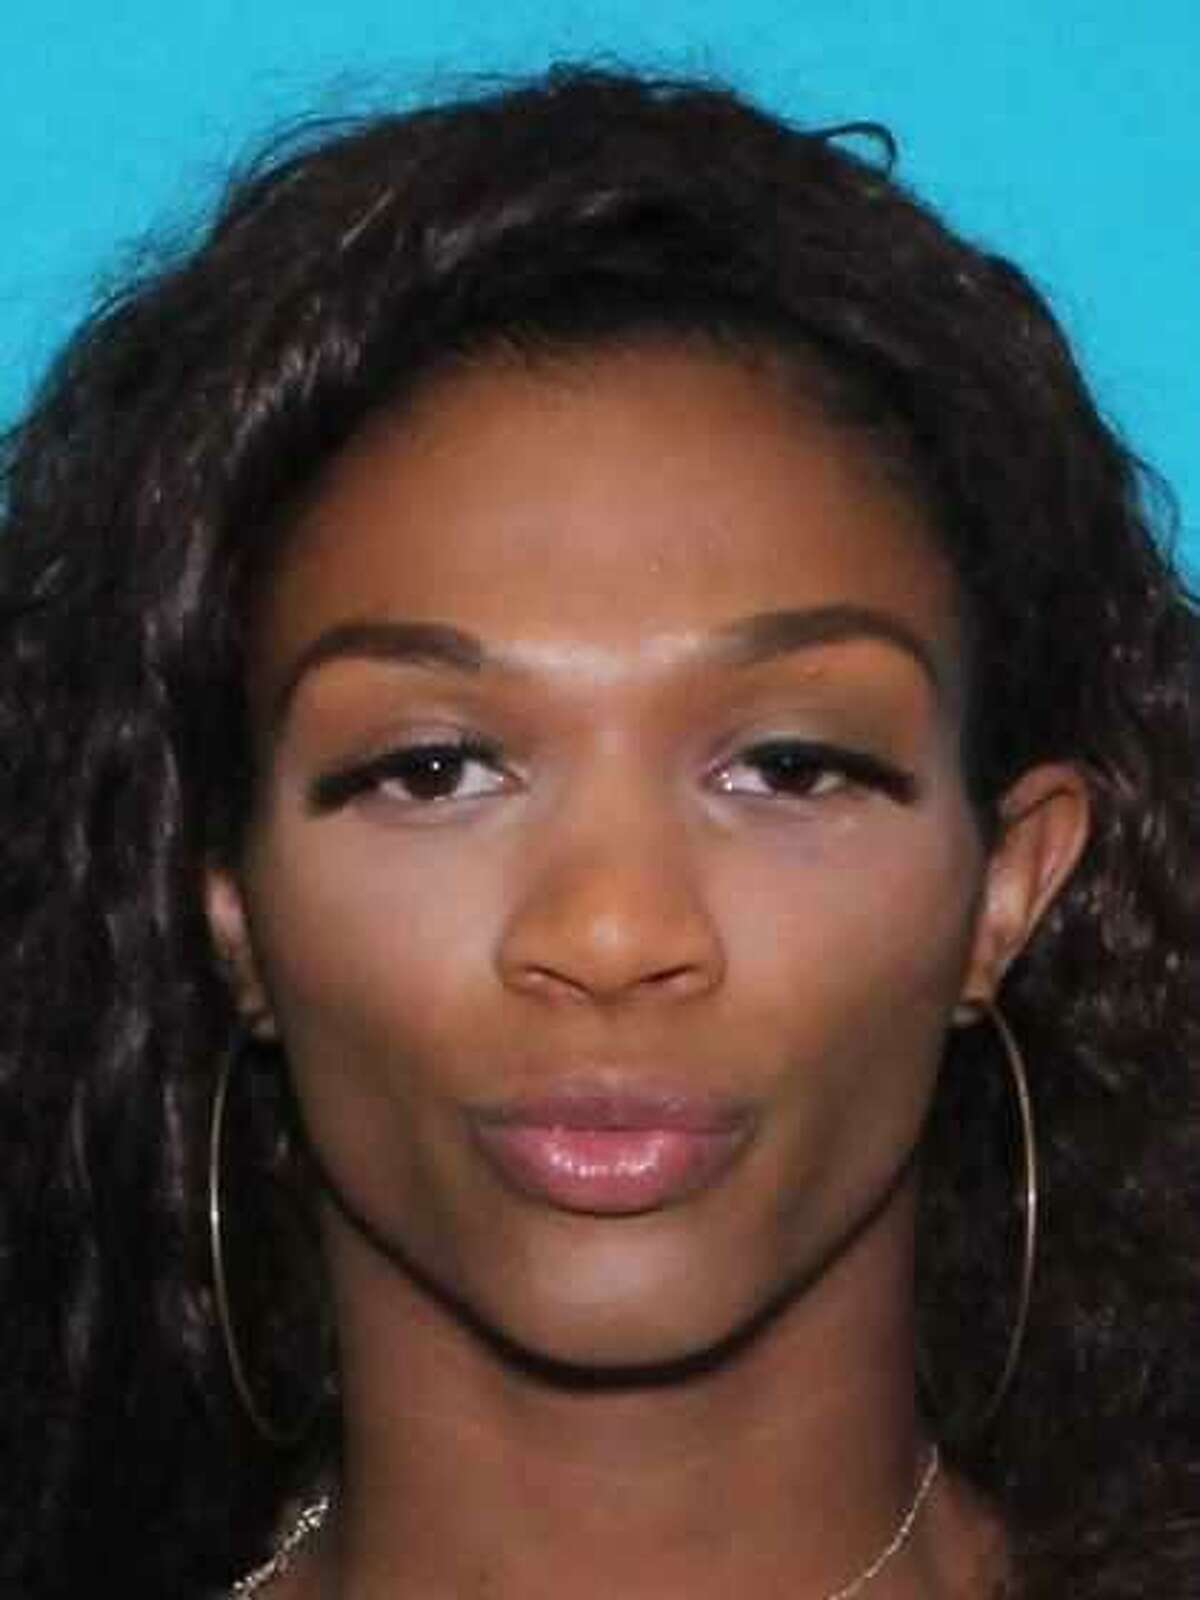 Port Arthur Police identified Aidelen Evans as the human remains discovered in a canal near the Motive plant in Port Arthur, Texas on Thursday, March 18, 2021.